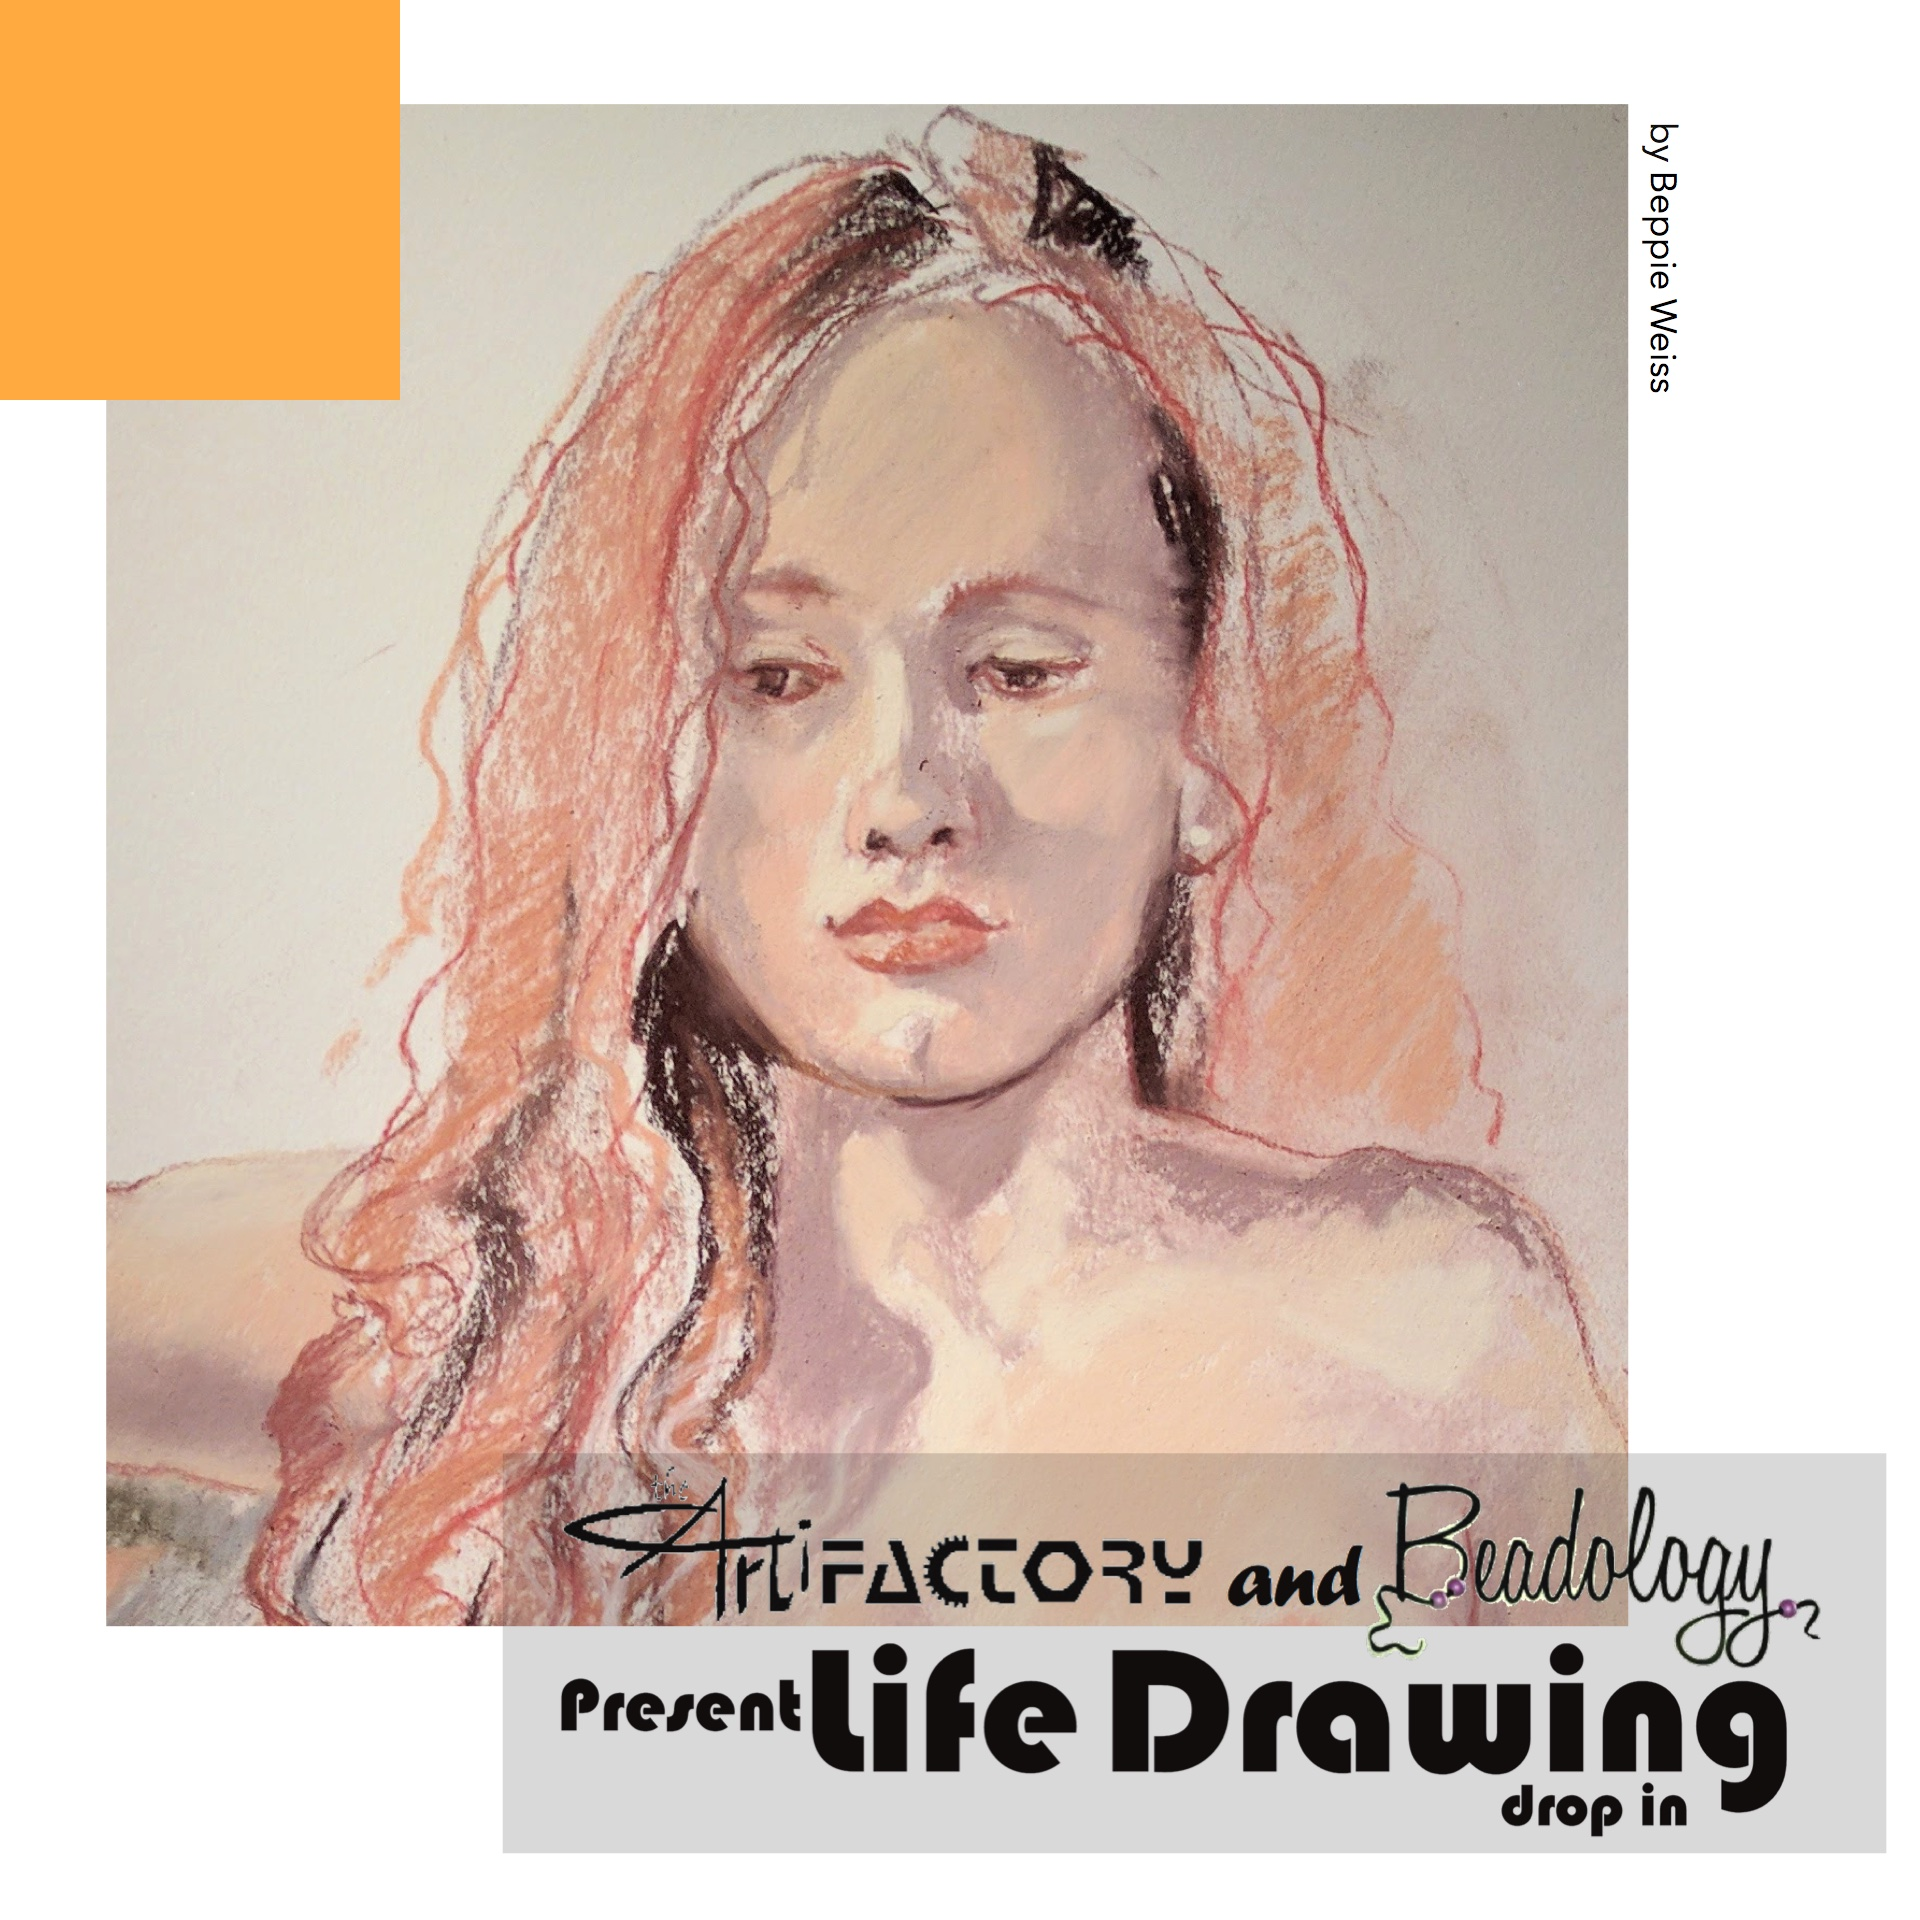 The Artifactory and Beadology present Life Drawing drop in